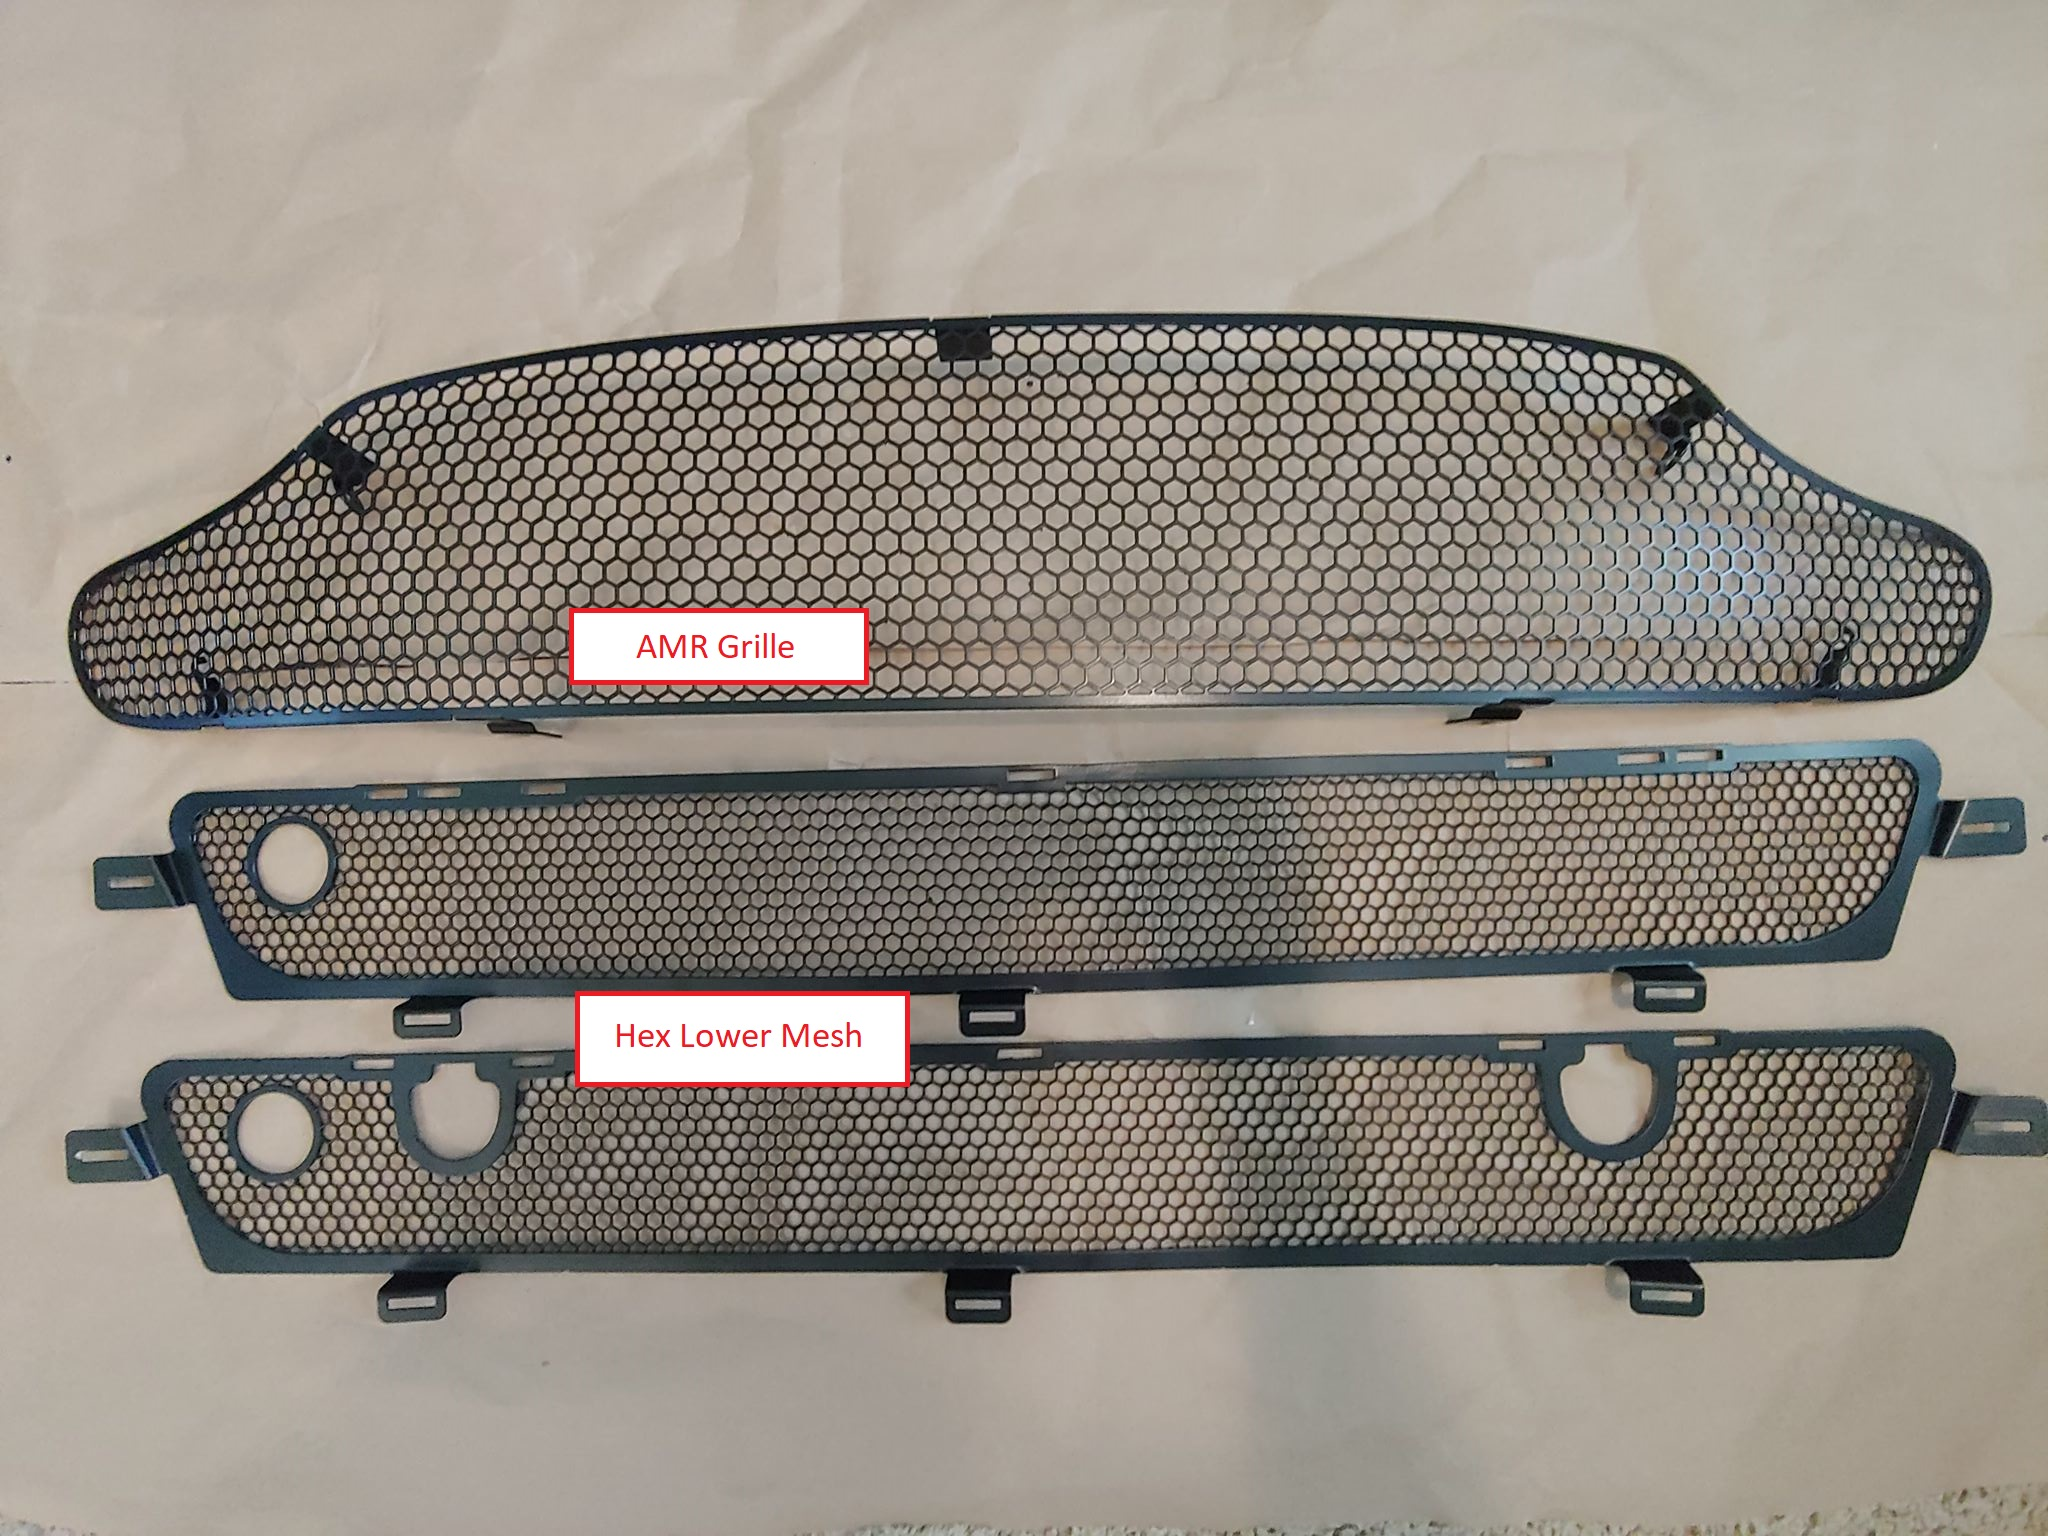 AMR Grille w Hex Lower Mesh Labeled.jpg